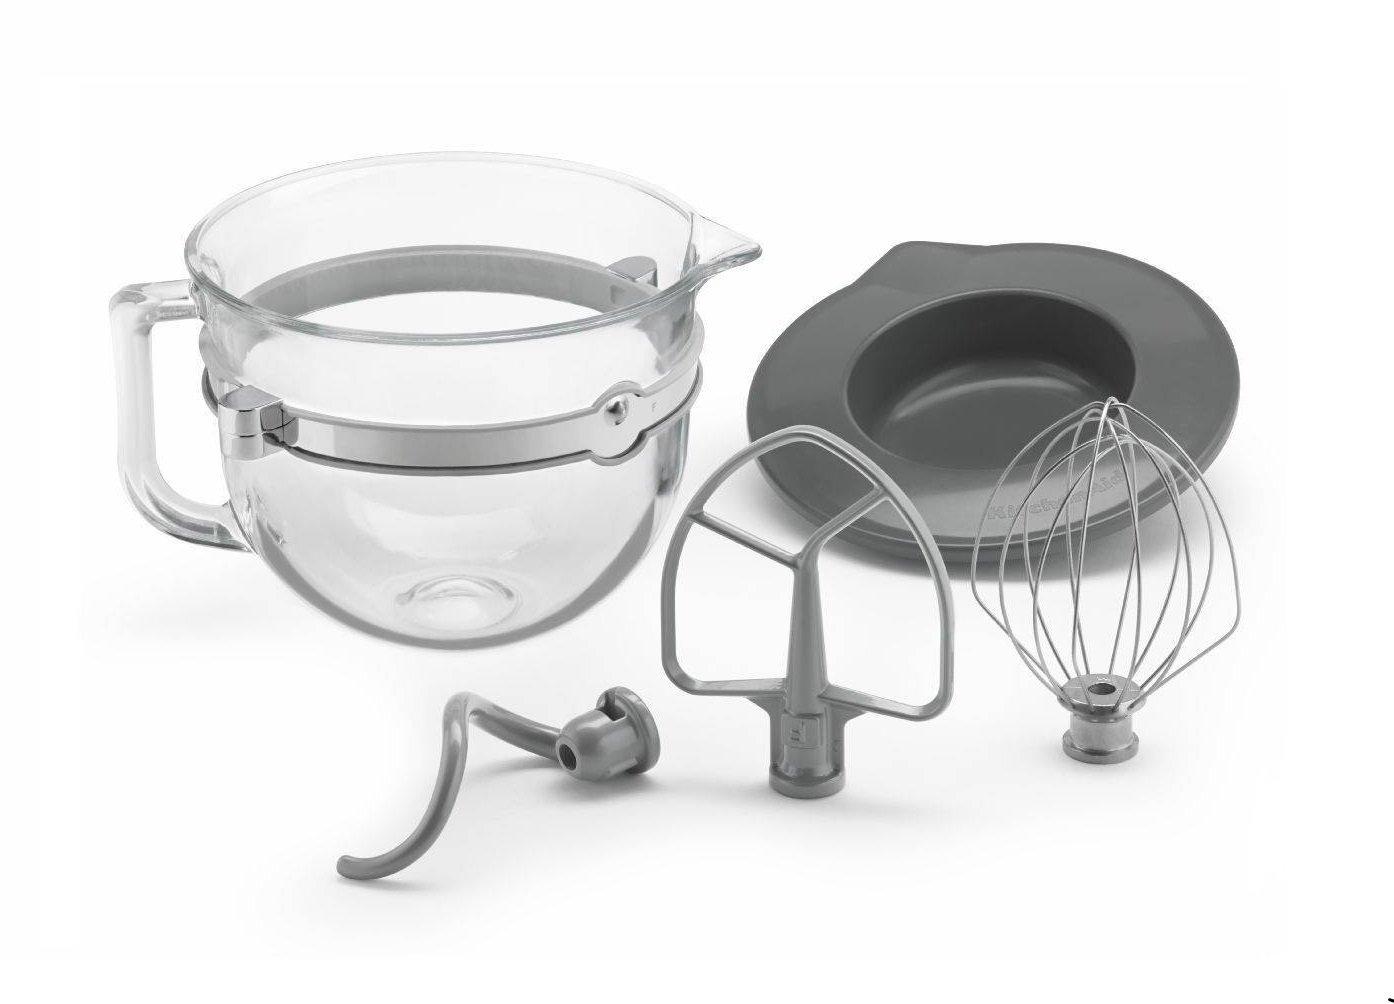 KitchenAid Glass 6 Quart Mixing Bowl with Accessories for Bowl-lift Stand Mixers KSMF6GB